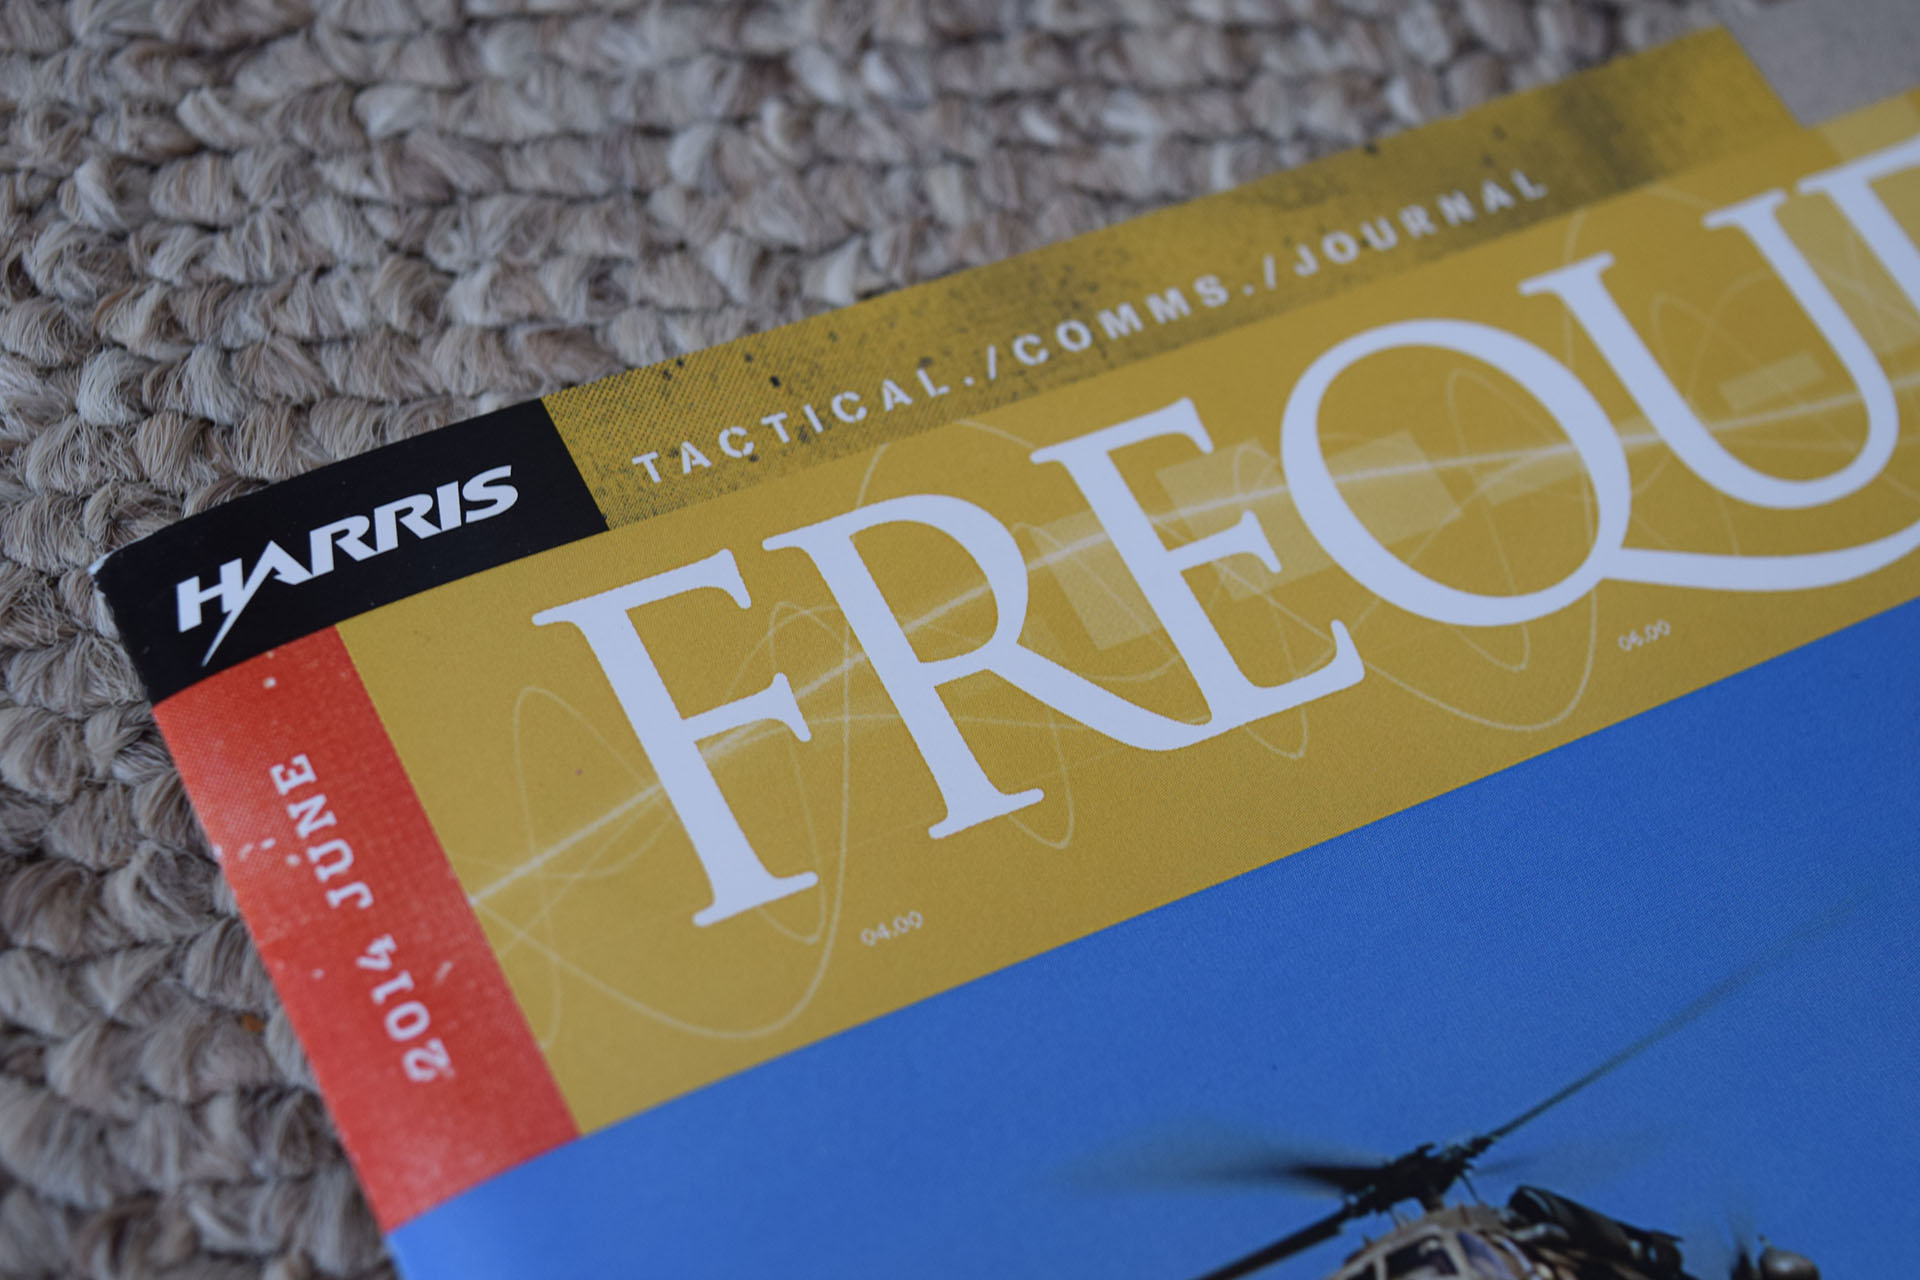 frequency-photo-cover-detail_0365